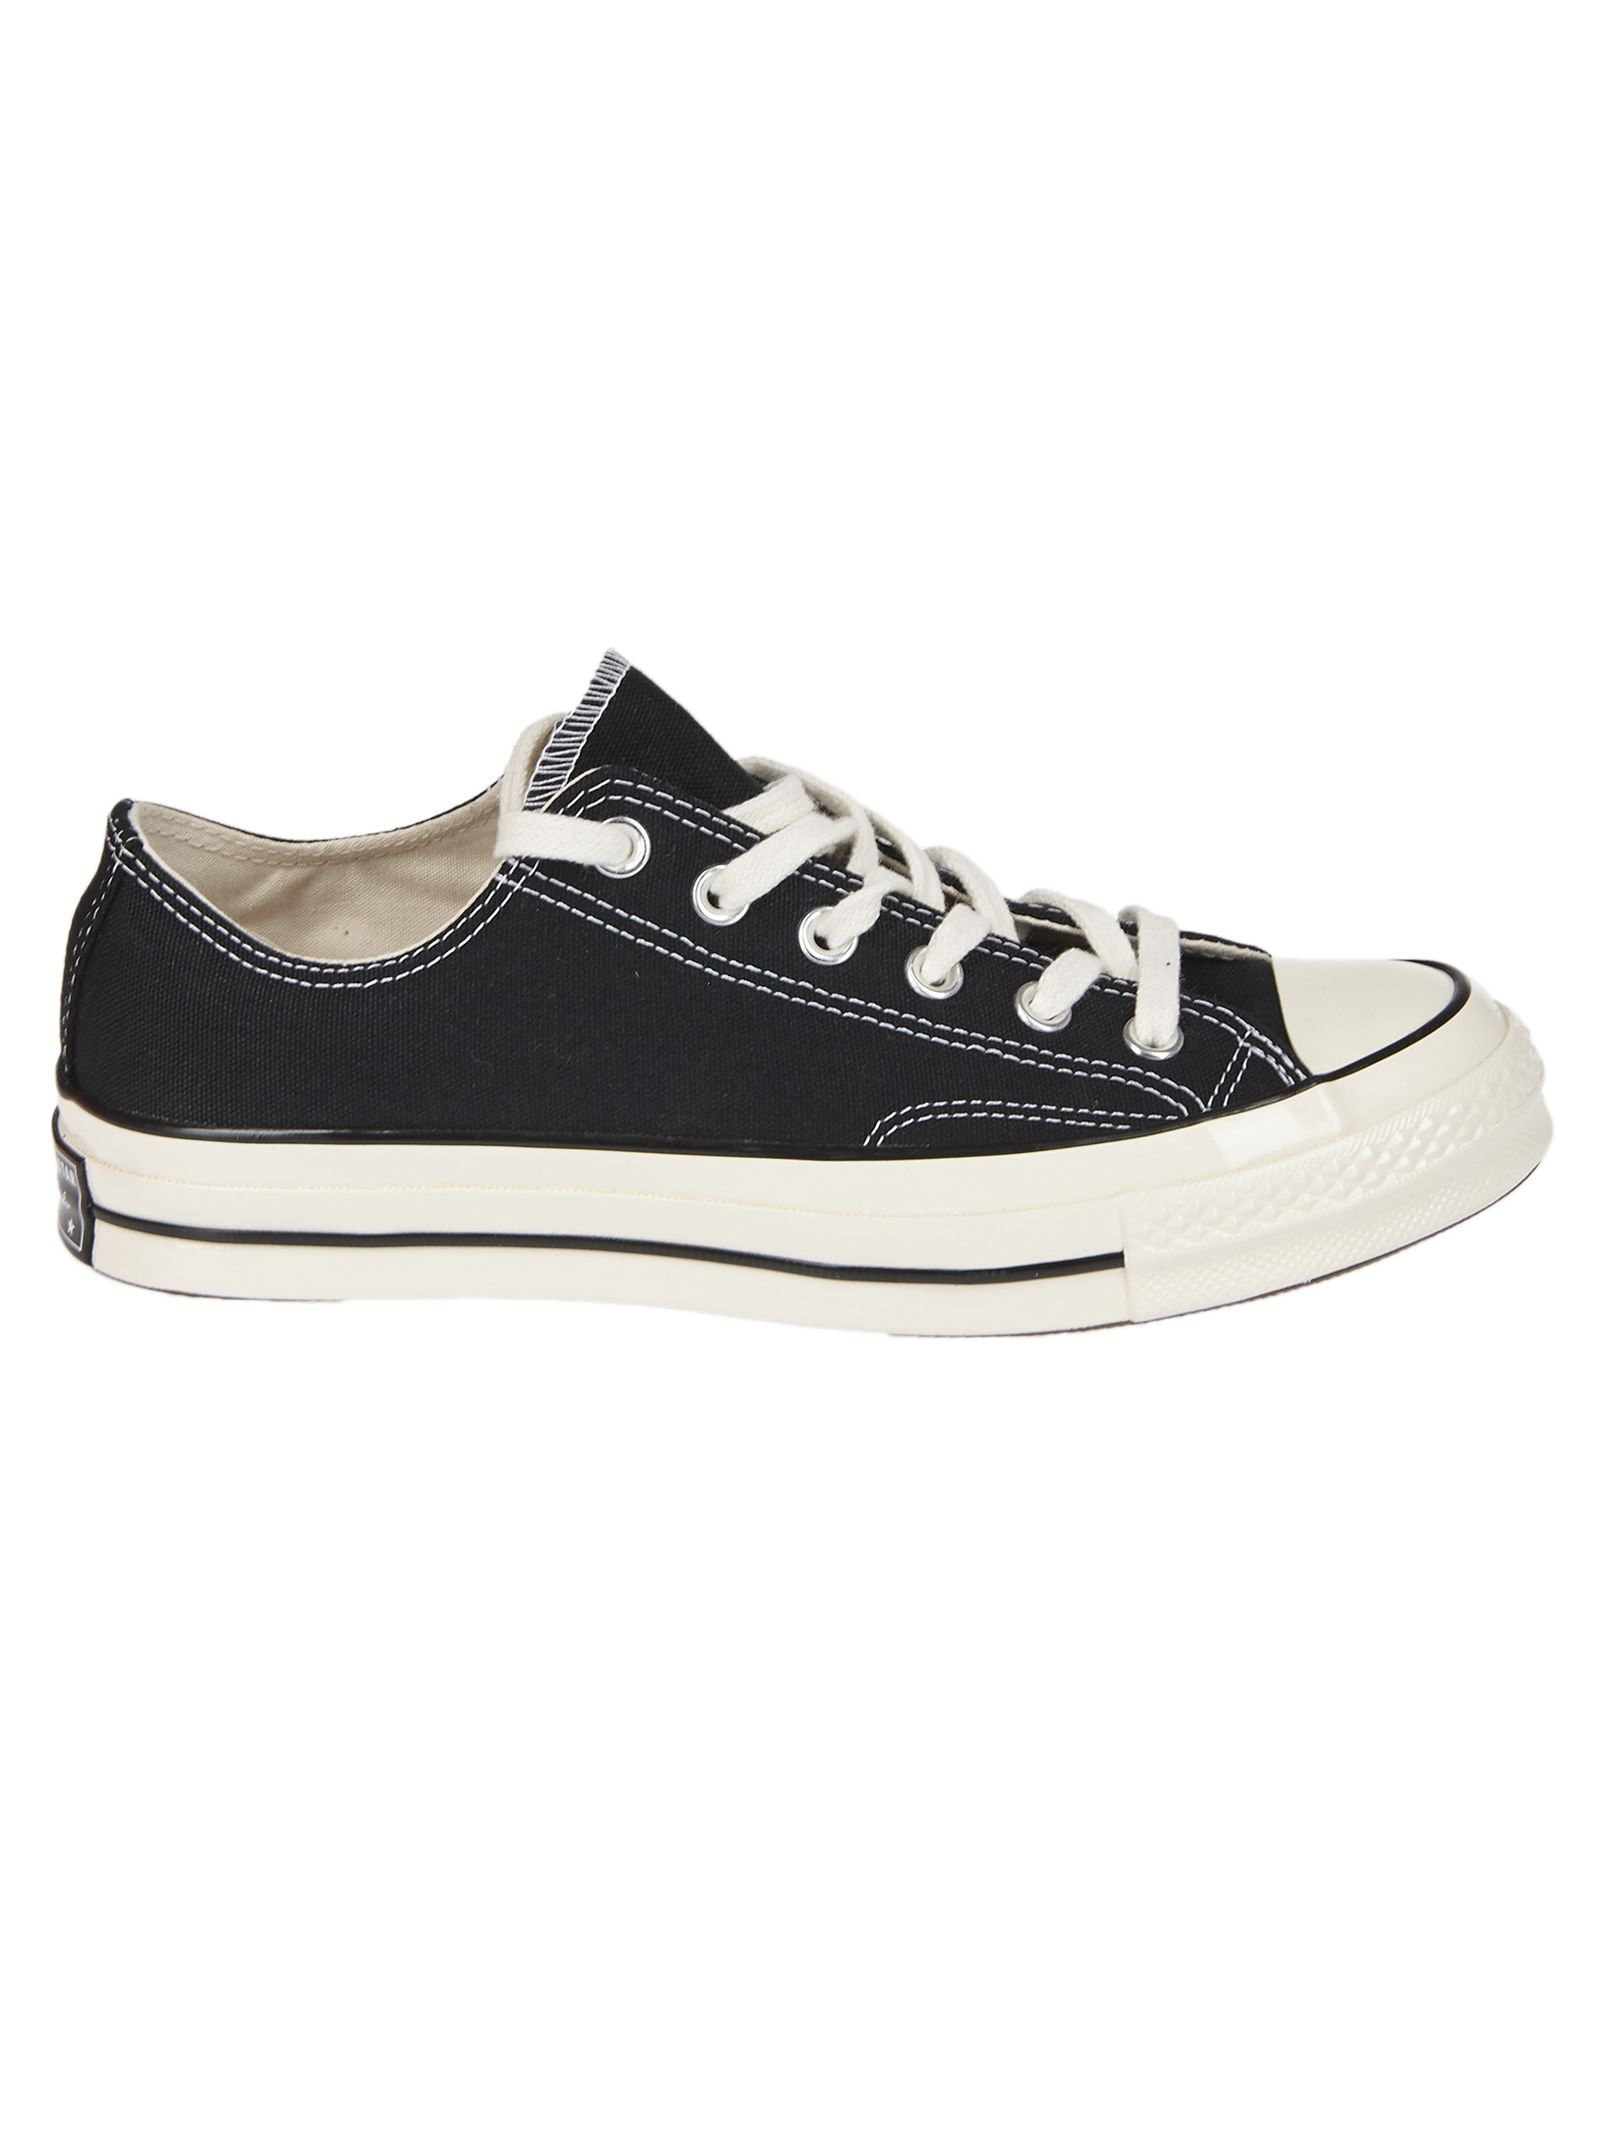 Converse Chuck Taylor All Star 1970's Sneakers